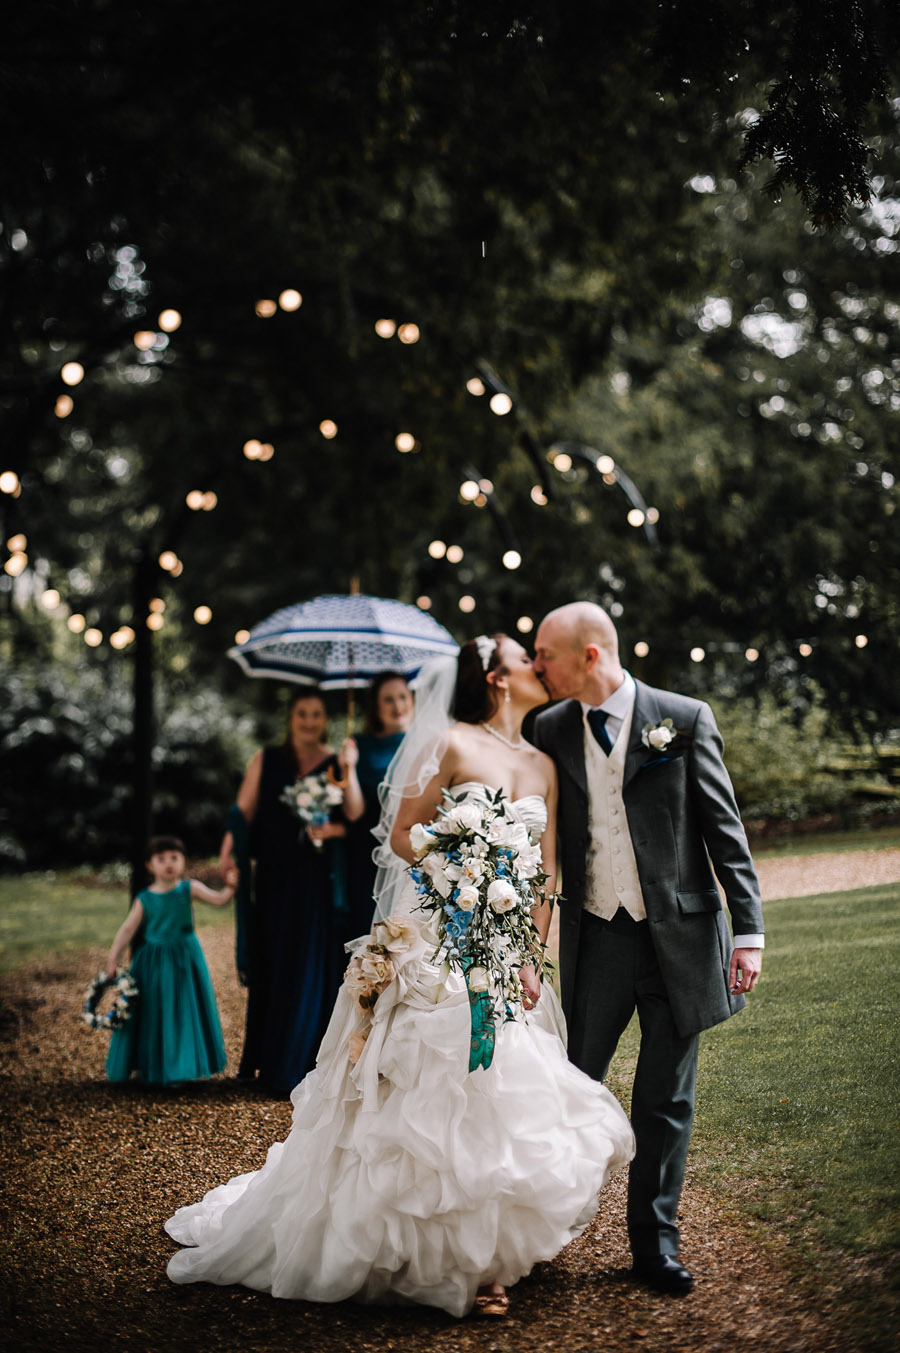 Peacock wedding styling ideas at Larmer Tree Gardens, image credit Oobaloos Photography (15)